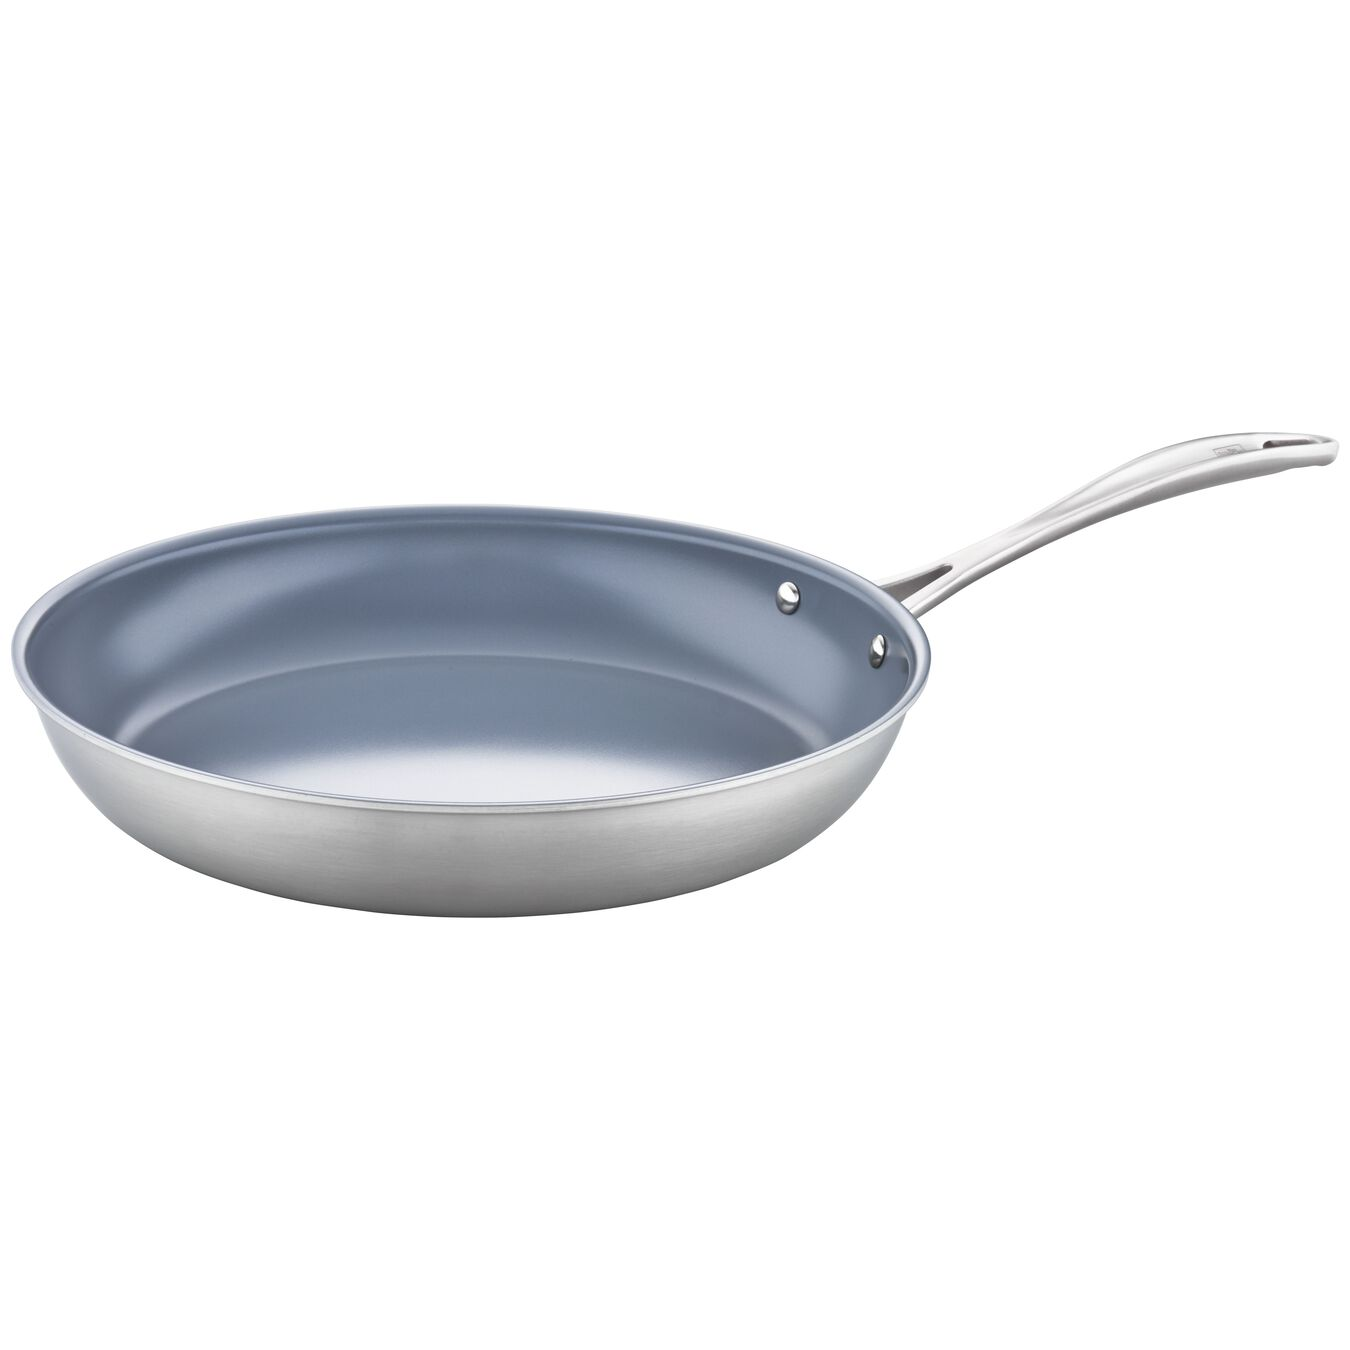 3 Ply, 12-inch, 18/10 Stainless Steel, Ceramic, Frying pan,,large 1